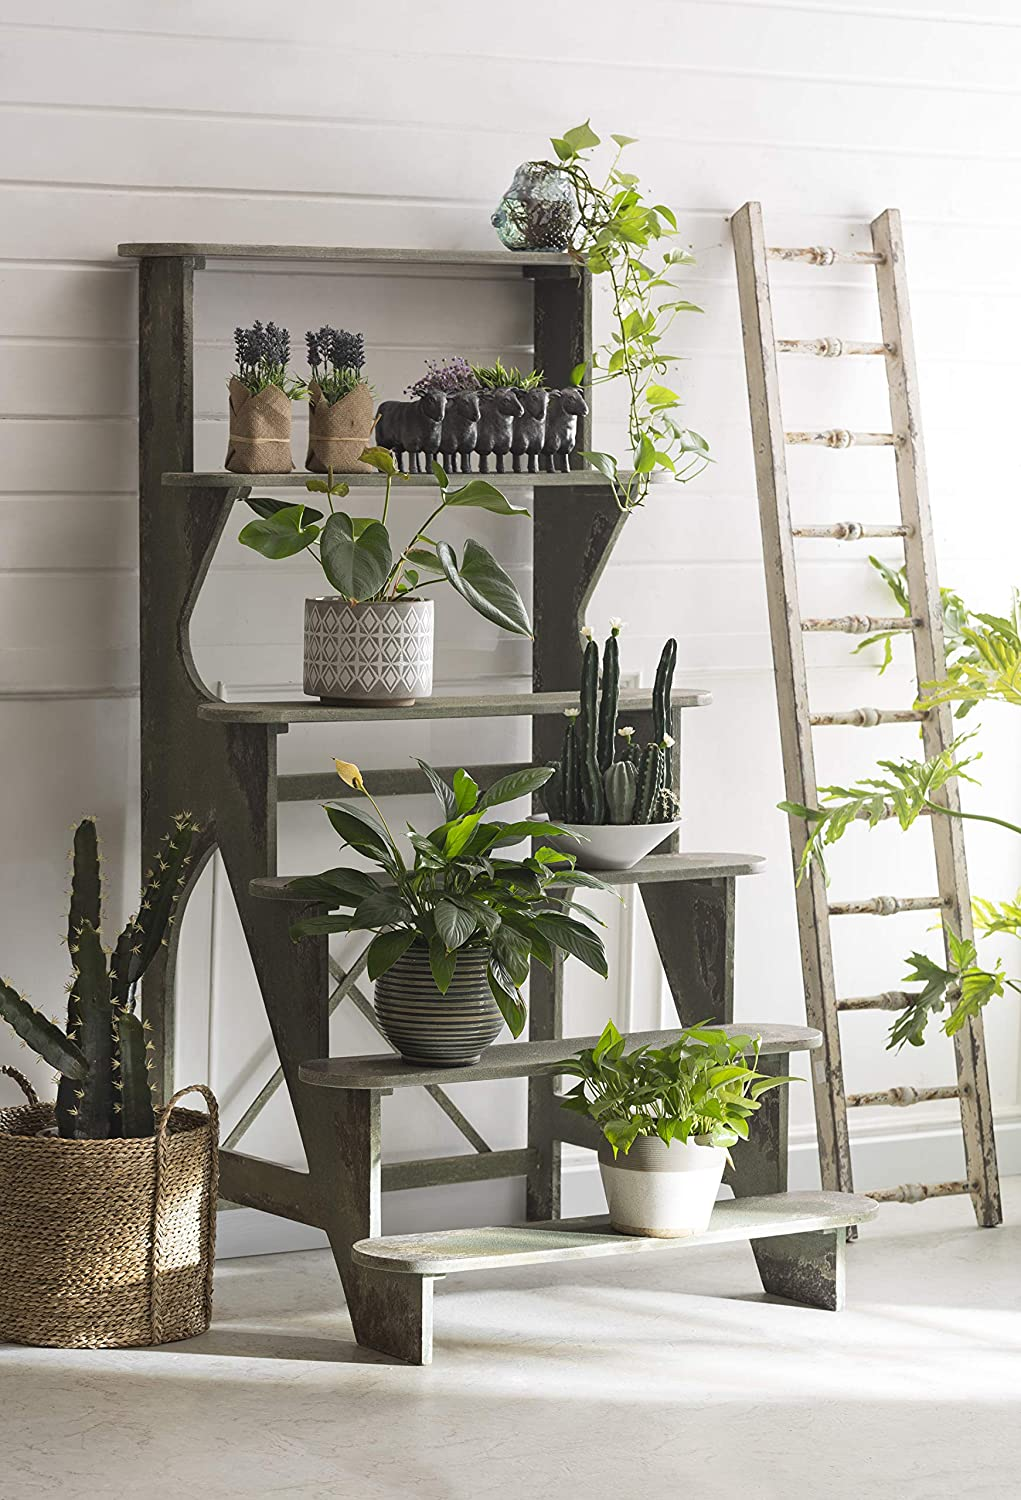 Rustic French farmhouse style wood potting bench for European country style decorating and interior design.